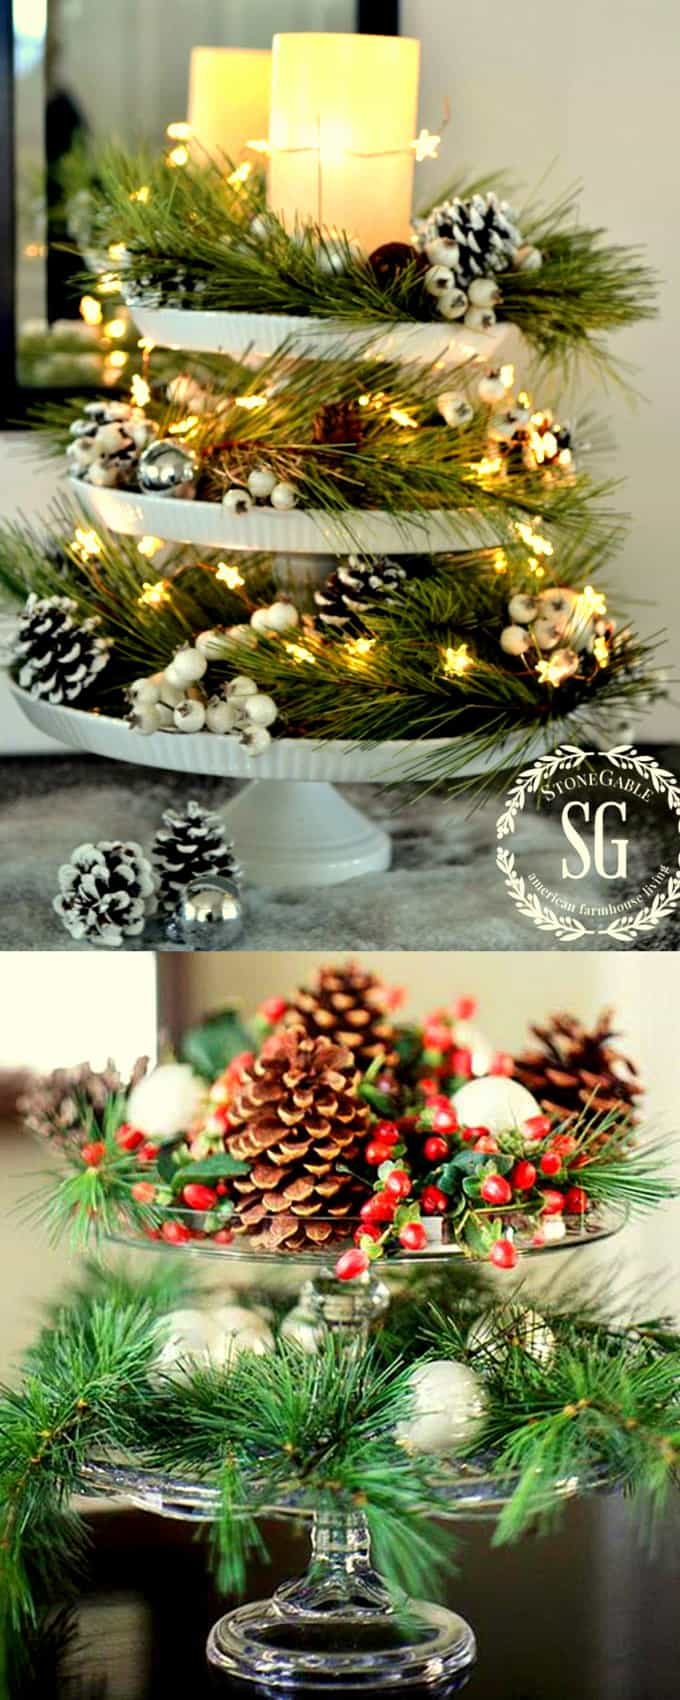 27 gorgeous & easy DIY Thanksgiving and Christmas table decorations & centerpieces! Most can be made in less than 20 minutes, from things you already have! - A Piece of Rainbow #DIYDecor #holiday #diy #christmas #christmasdecor #christmasideas #thanksgiving #homedecor #homedecorideas #crafts #crafting #craftsforkids #farmhouse #vintage #farmhousestyle #farmhousedecor #rusticdecor #partyideas #centerpiece #tabledecor